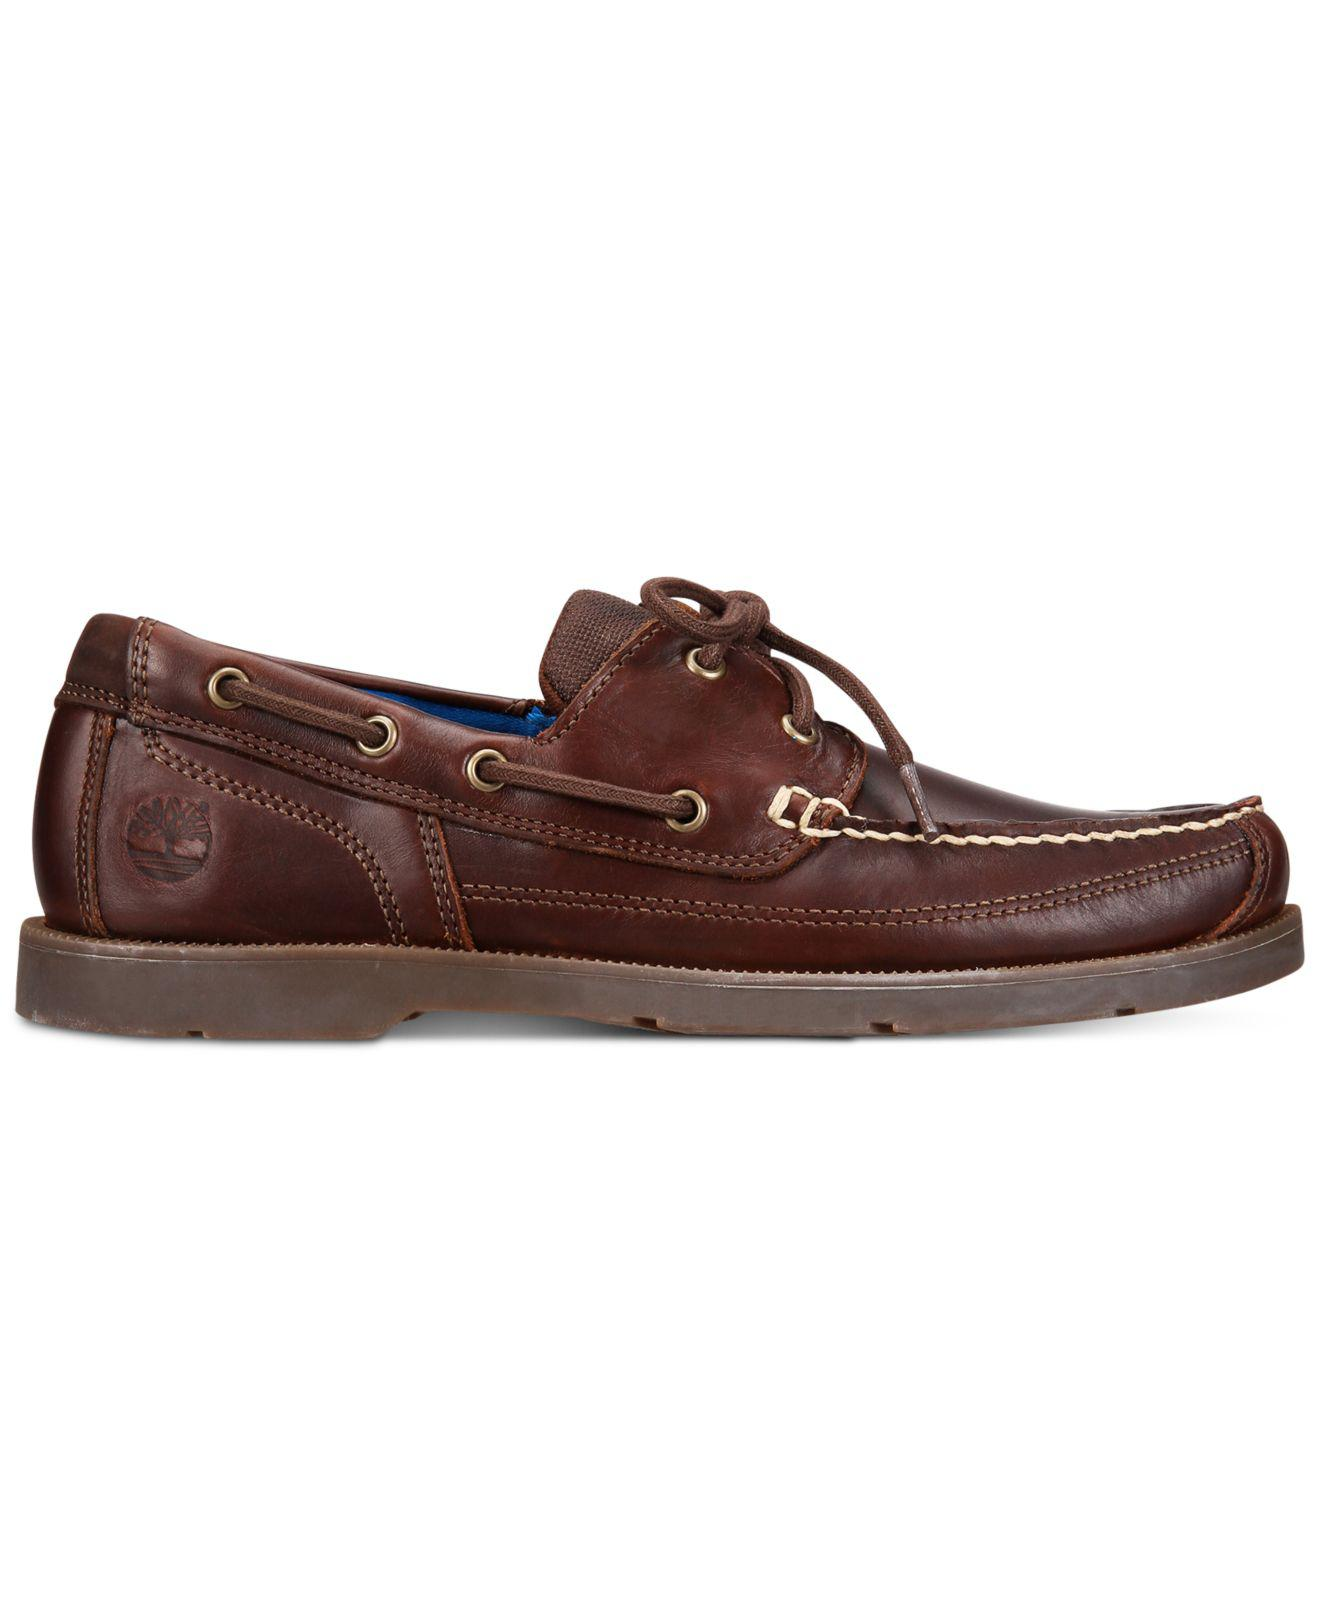 8645f2feaa Timberland Men's Piper Cove Leather Boat Shoes in Brown for Men - Save 41%  - Lyst